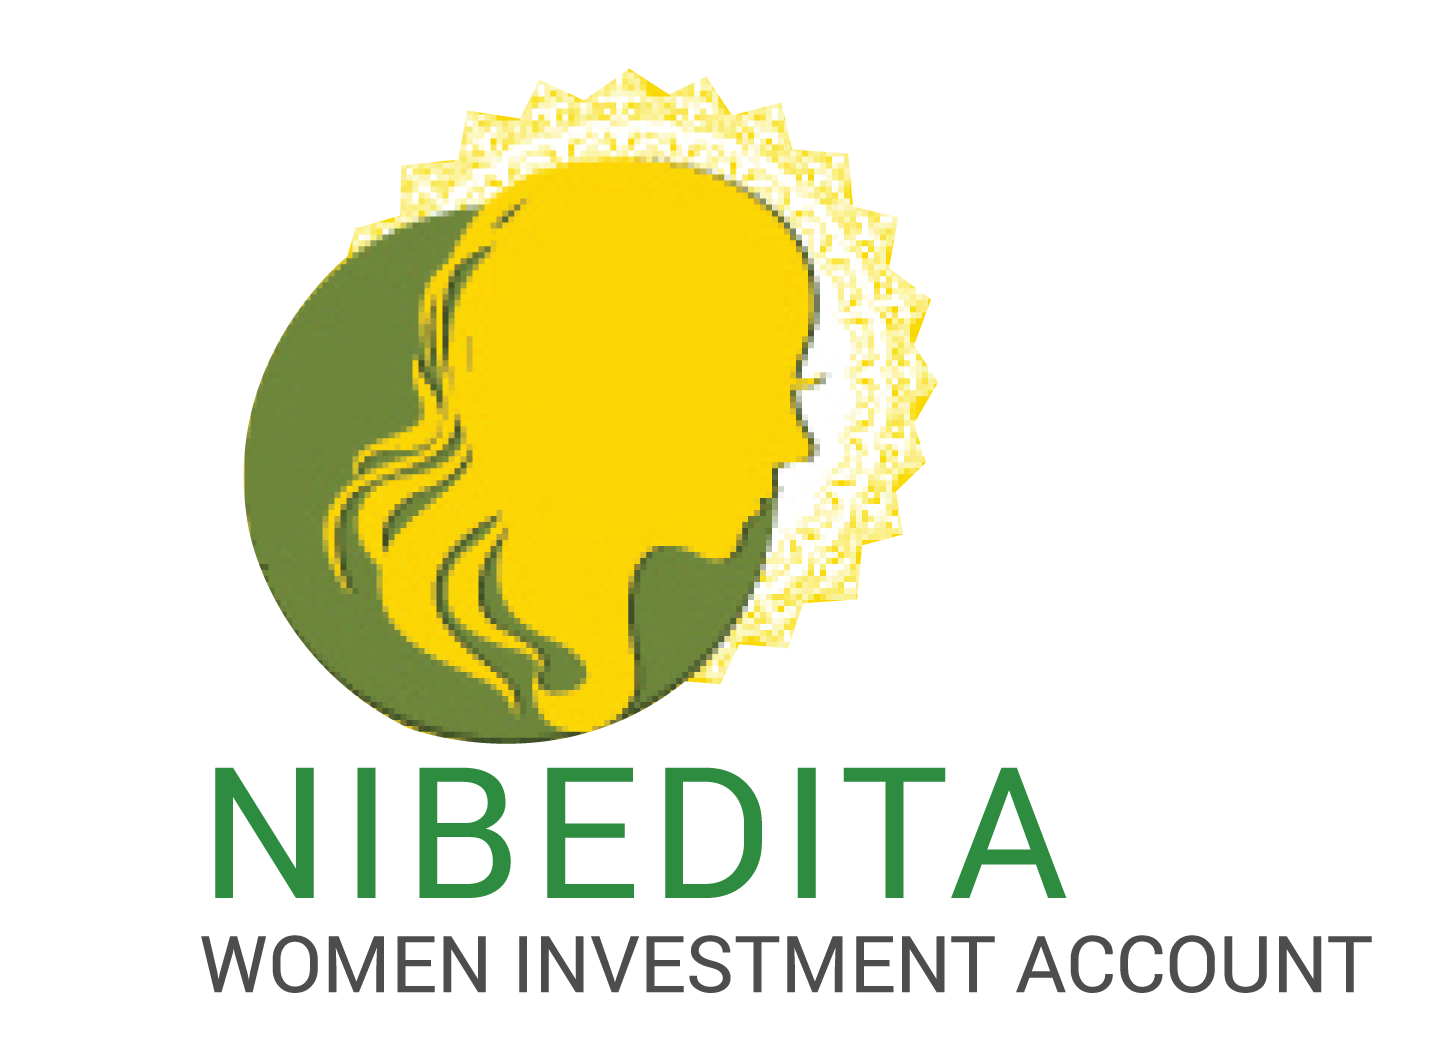 Nibedita, Green Delta Securities Limited